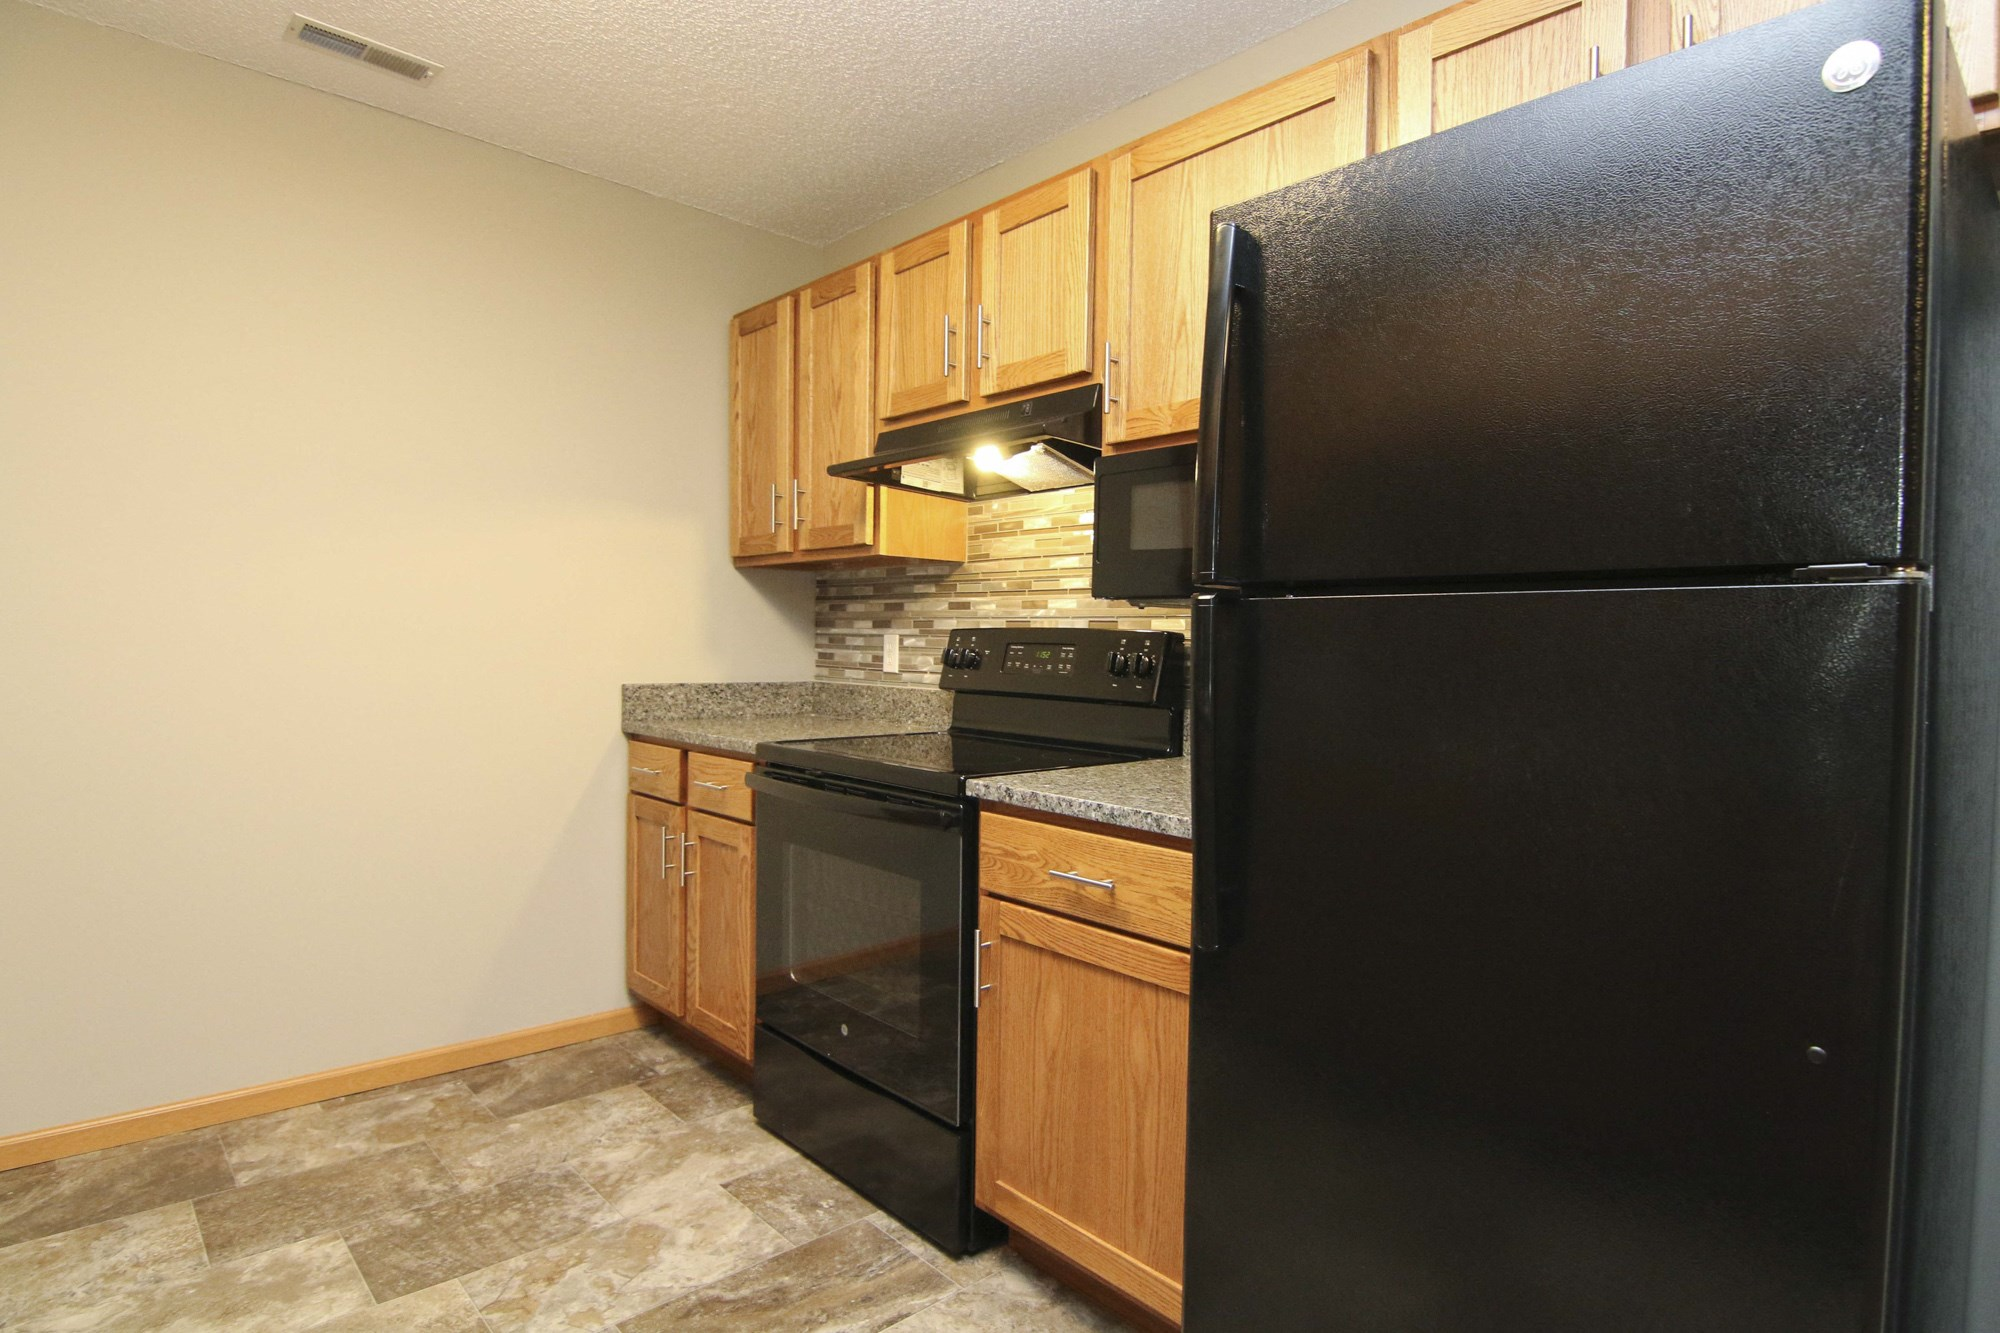 Interiors-Renovated kitchen at Northbrook Apartments